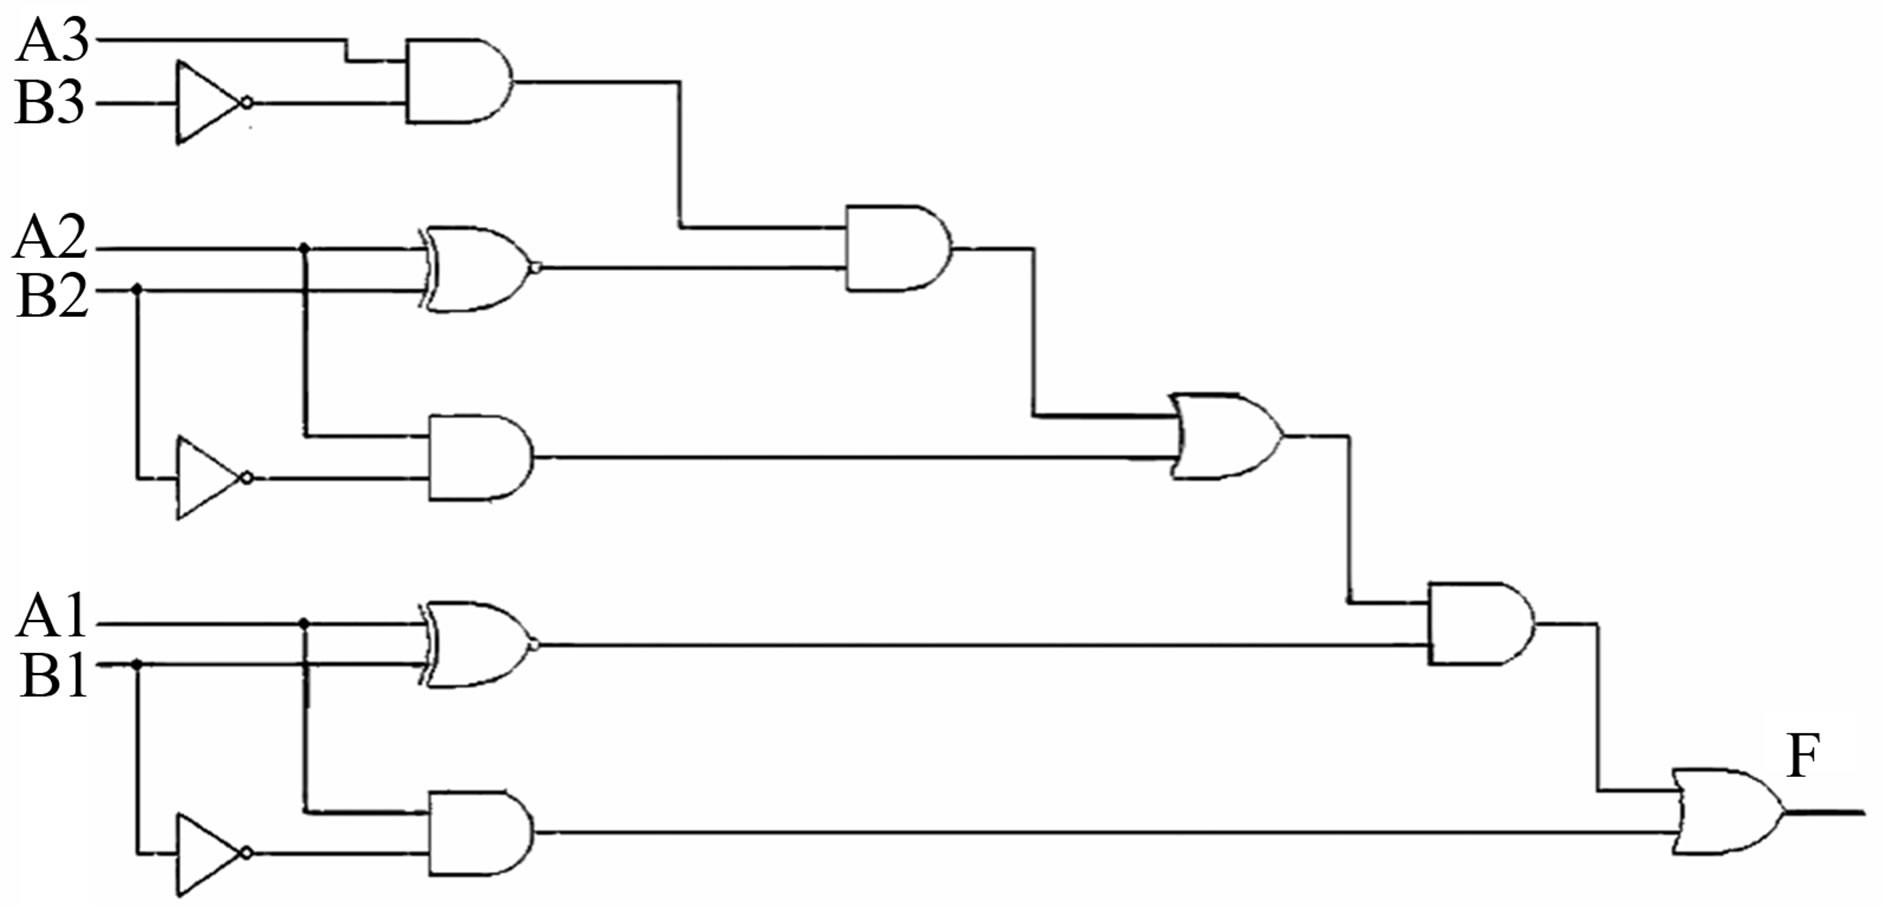 2 Bit Magnitude Comparator Logic Diagram